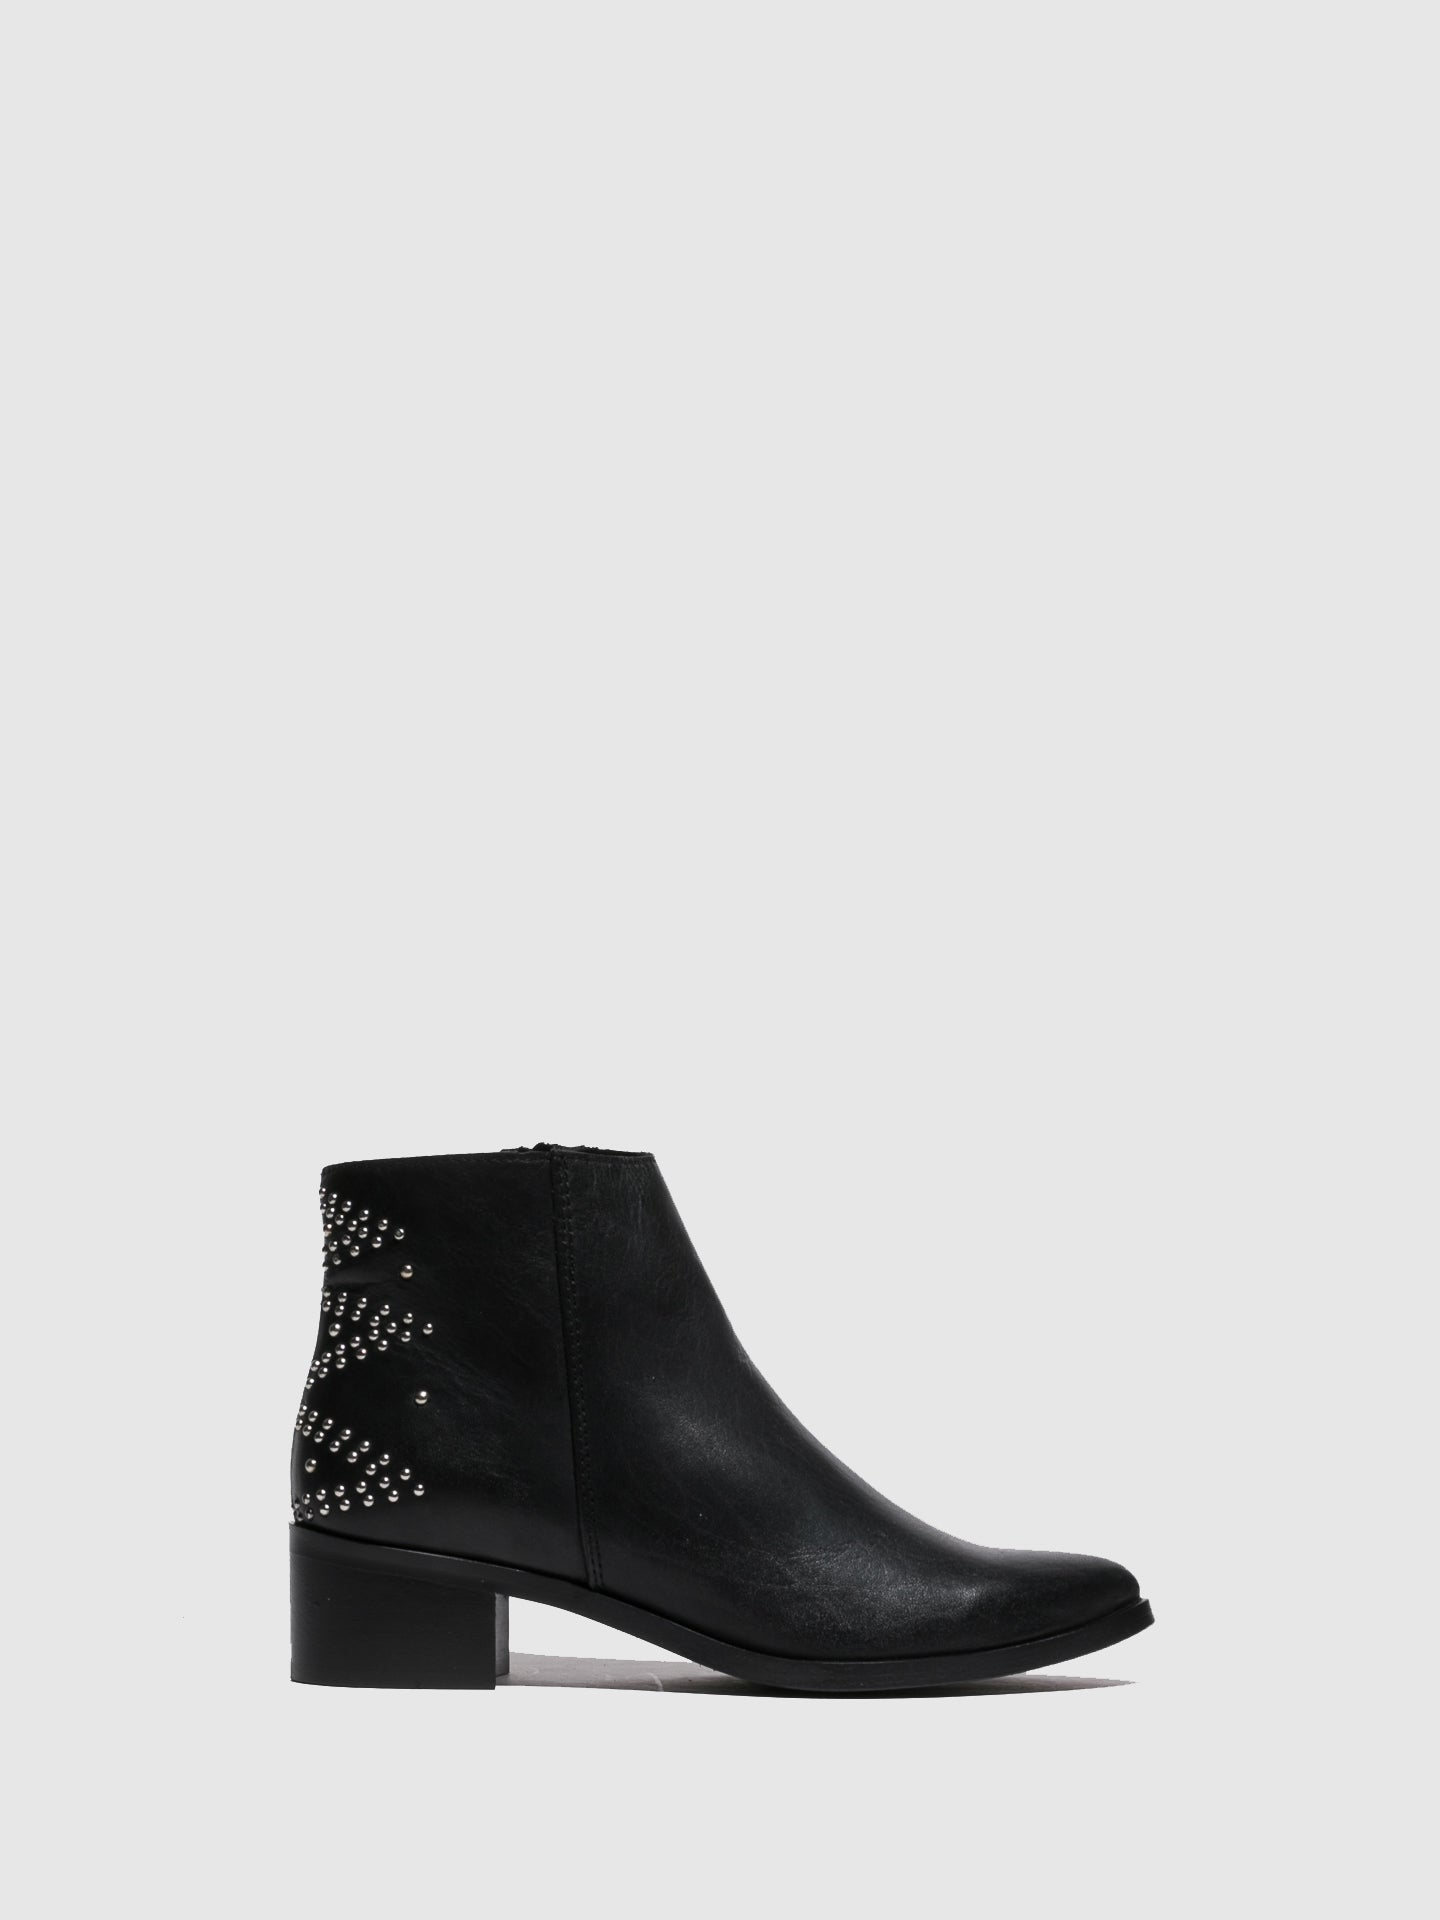 Foreva Black Pointed Toe Ankle Boots